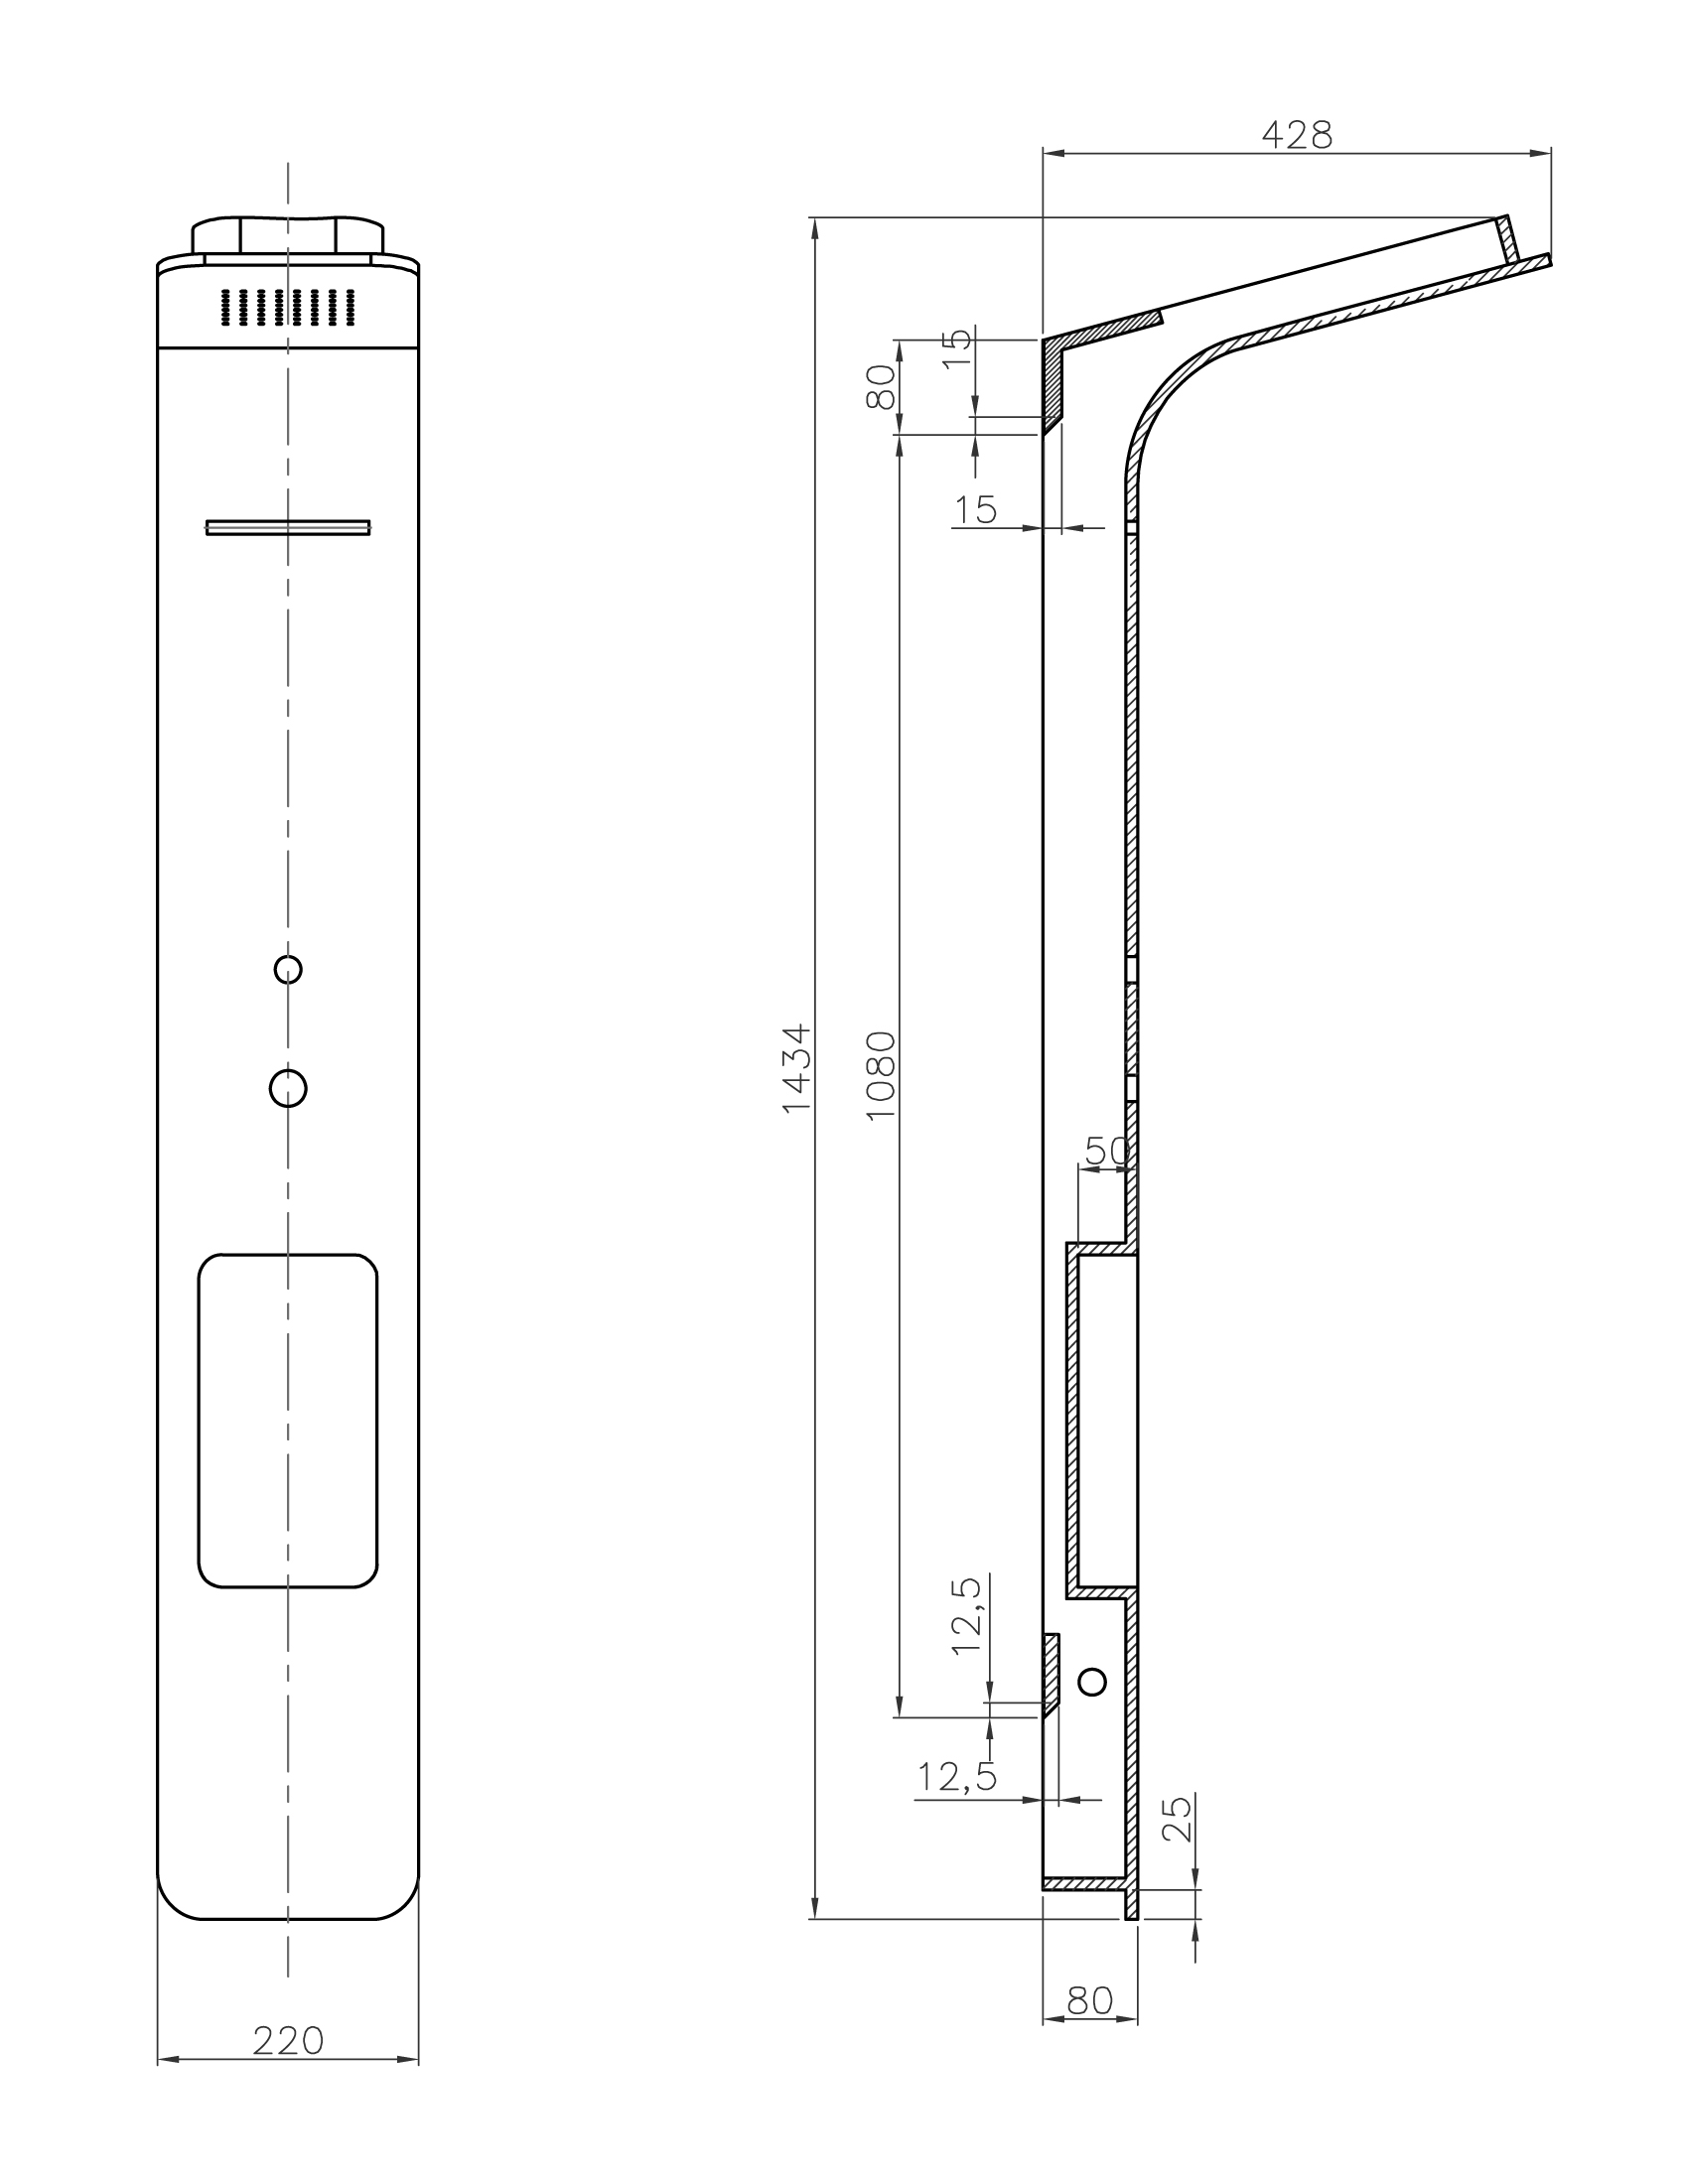 TECHNICAL DRAWING Schéma WD0046